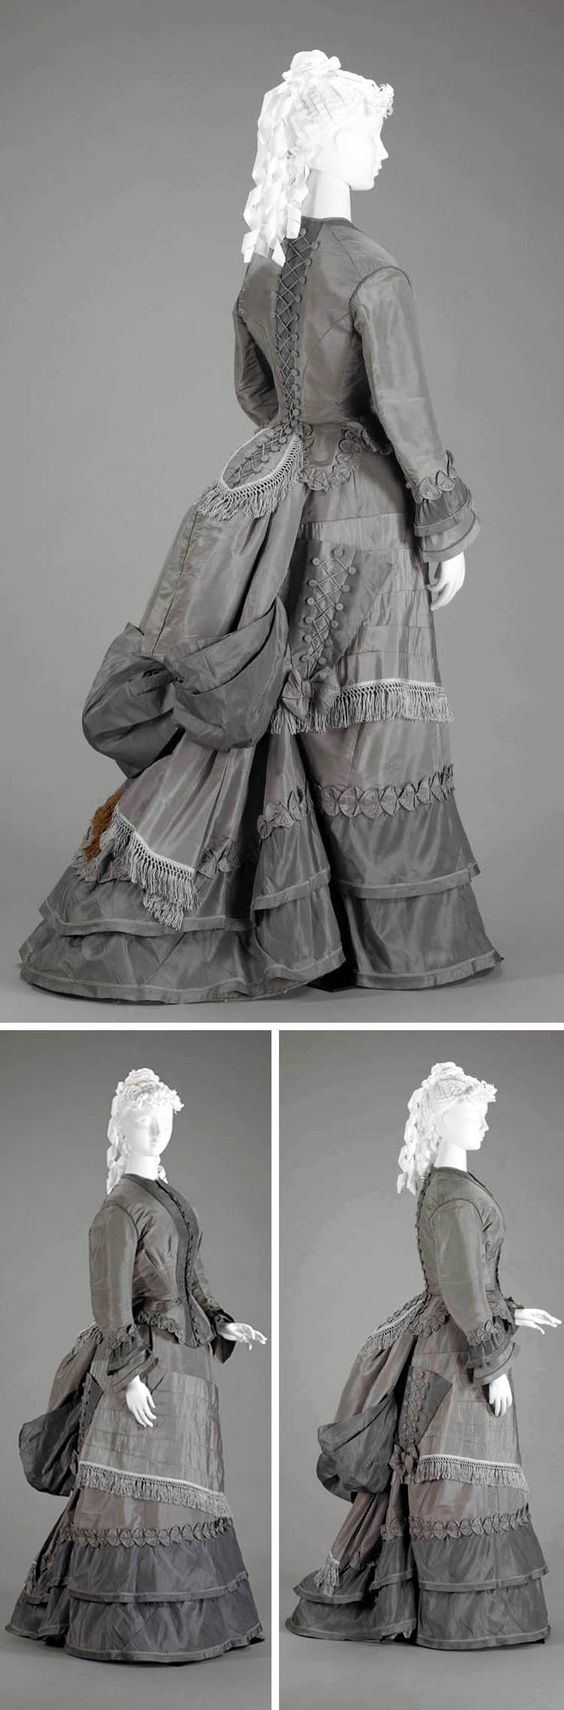 Walking suit ca. 1870s. Two-piece visiting dress in 2 shades of gray silk faille. Skirt has short train and is worn with bustle. Triangular pocket on right side of skirt, trimmed with buttons & cord lacing, was designed to hold parasol. Indianapolis Museum of Art: